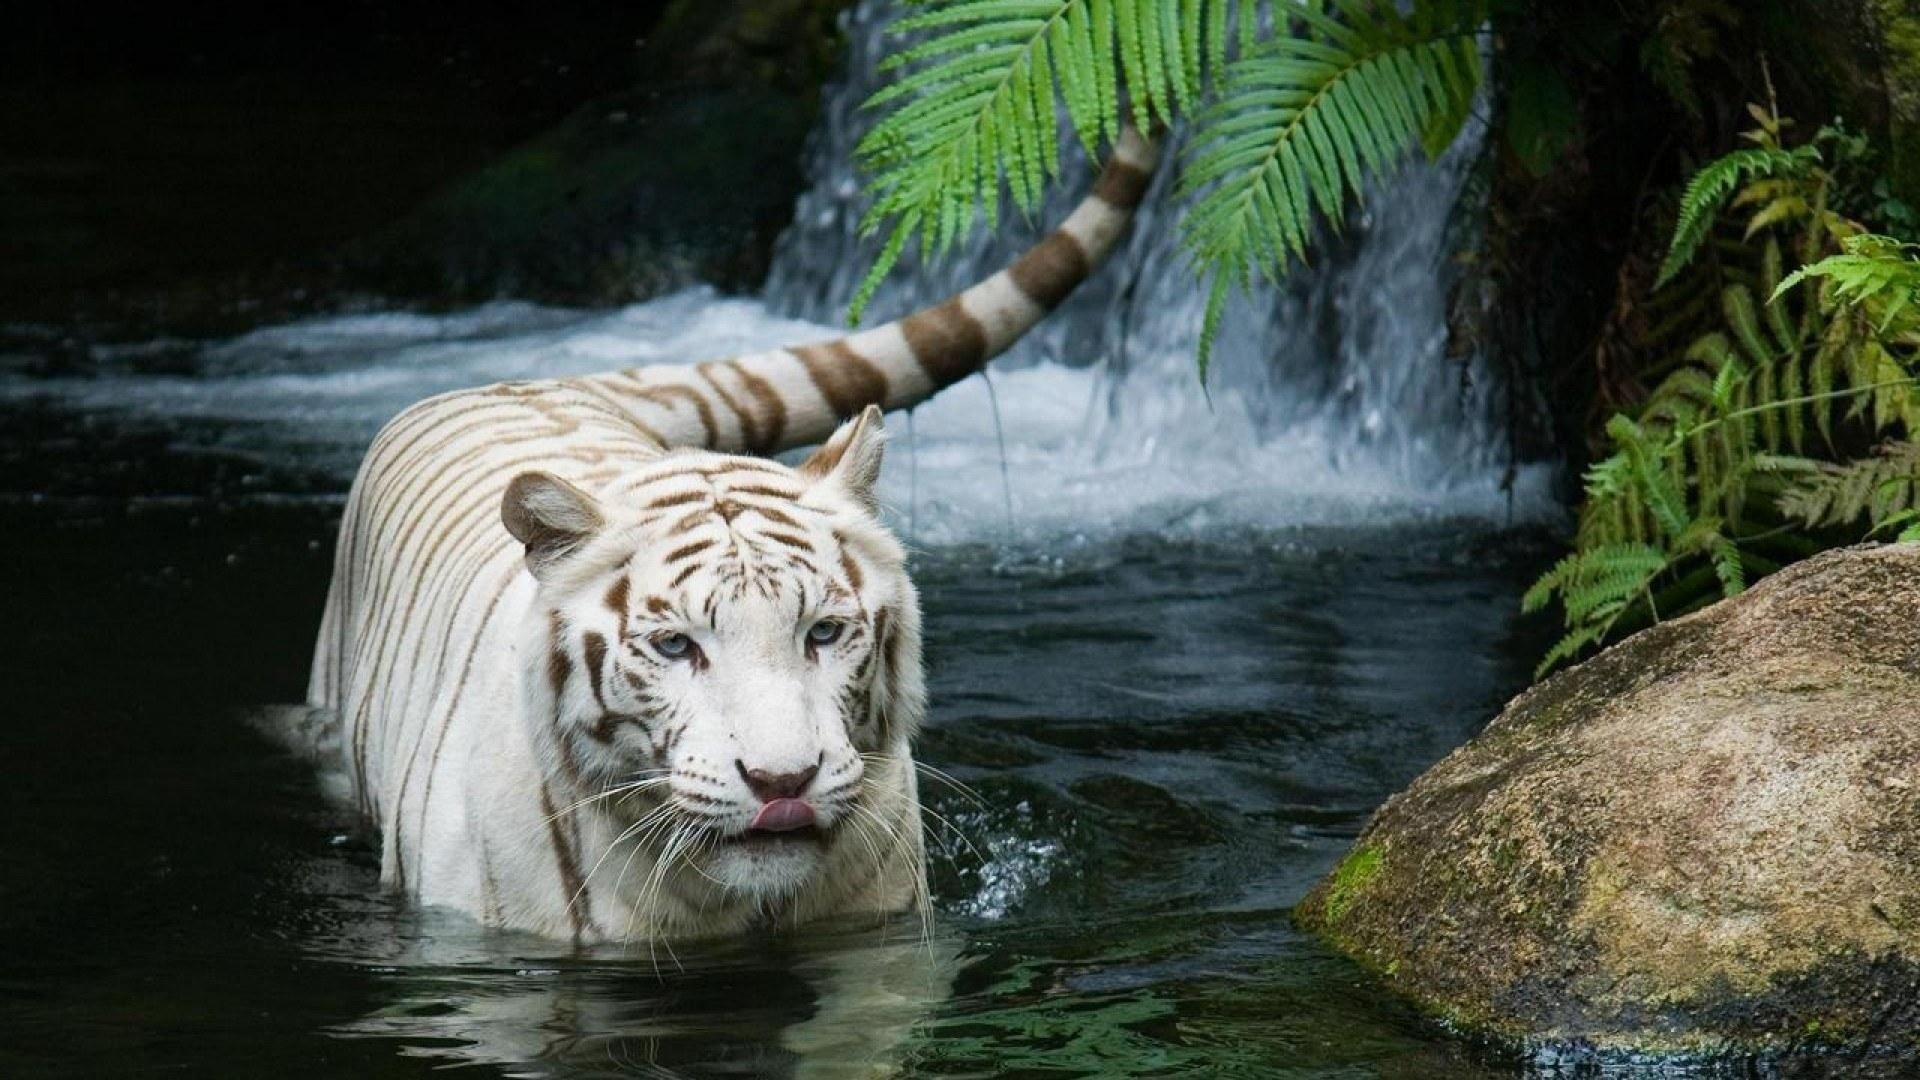 High resolution White Tiger full hd 1920x1080 background ID:174871 for computer